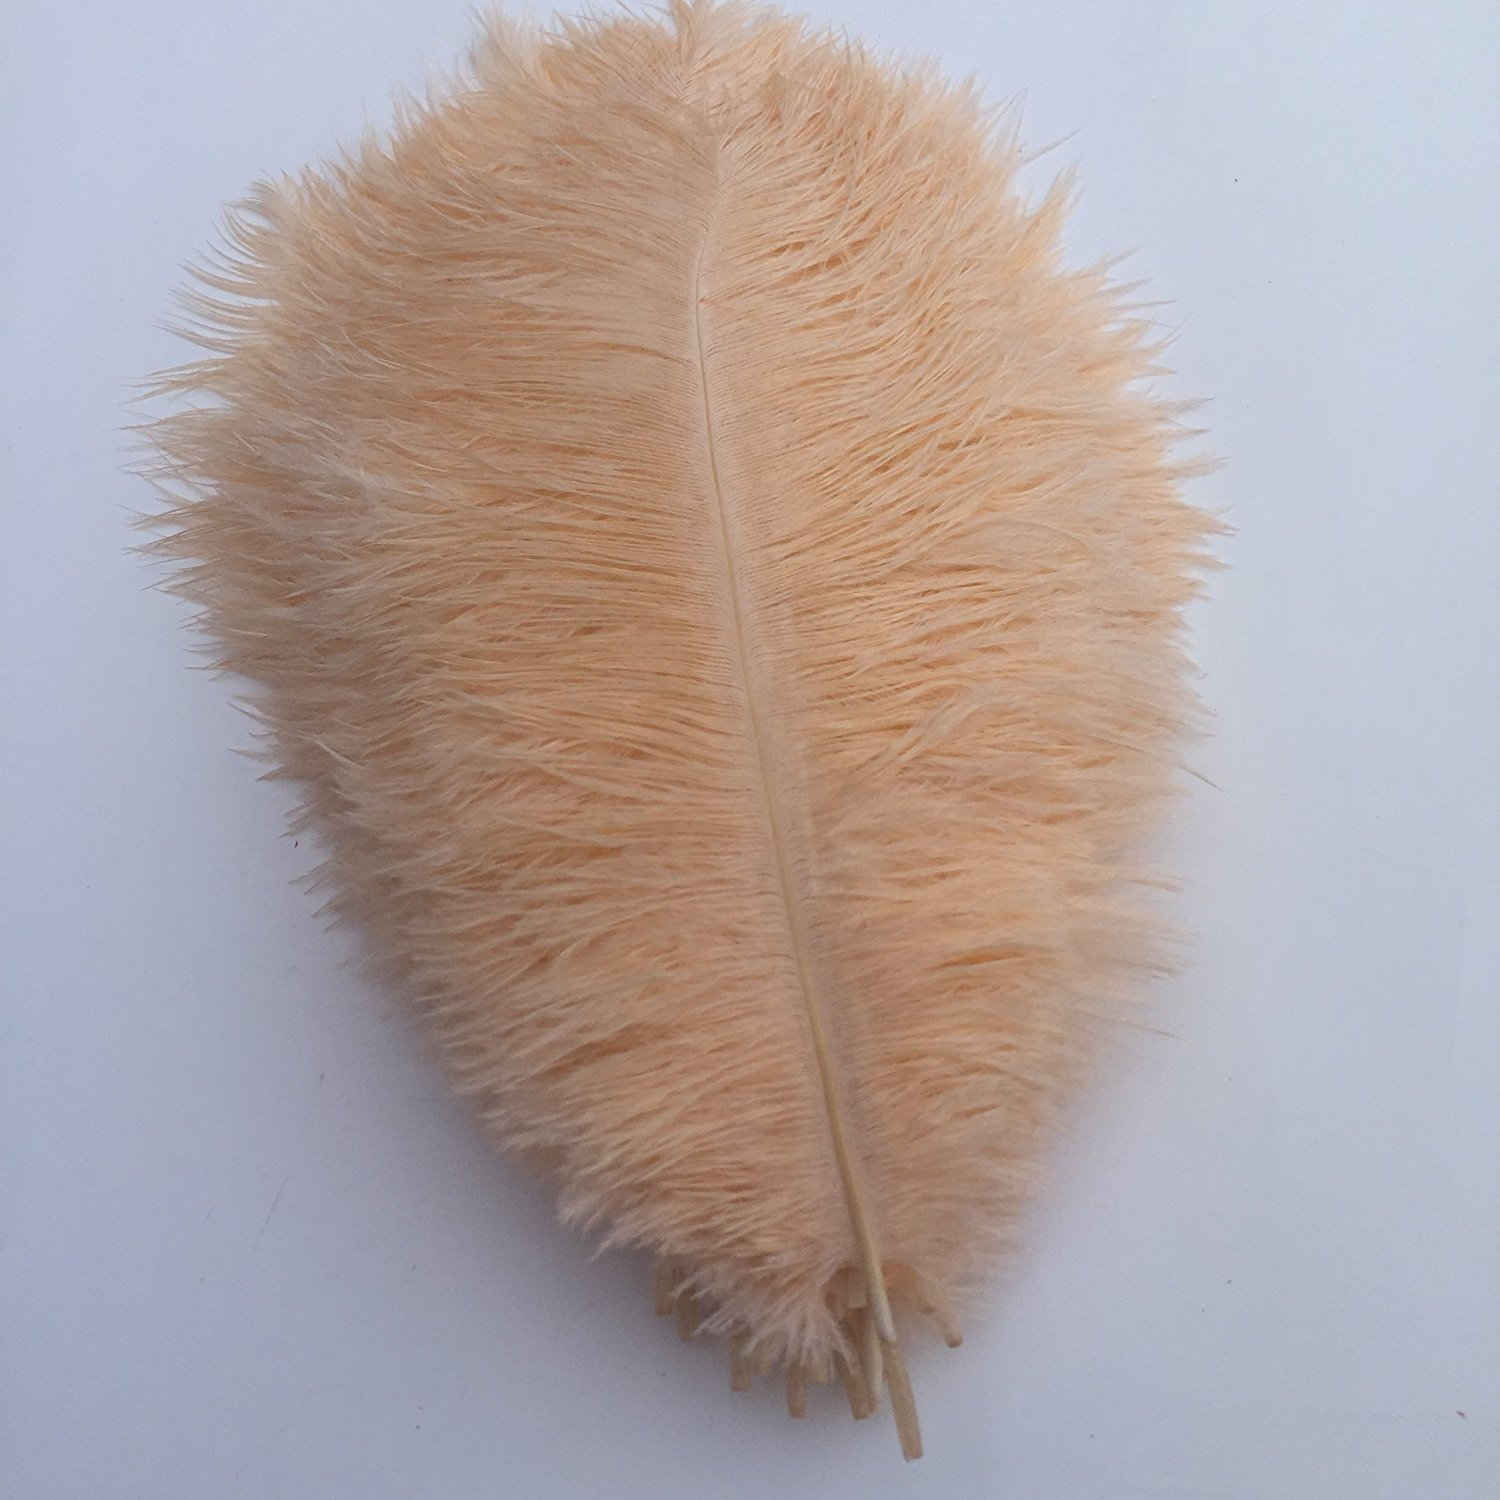 MELADY Pack of 100pcs 23~25inches Natural Ostrich Feathers Perfect for Home Wedding Party Decoration (Champagne)